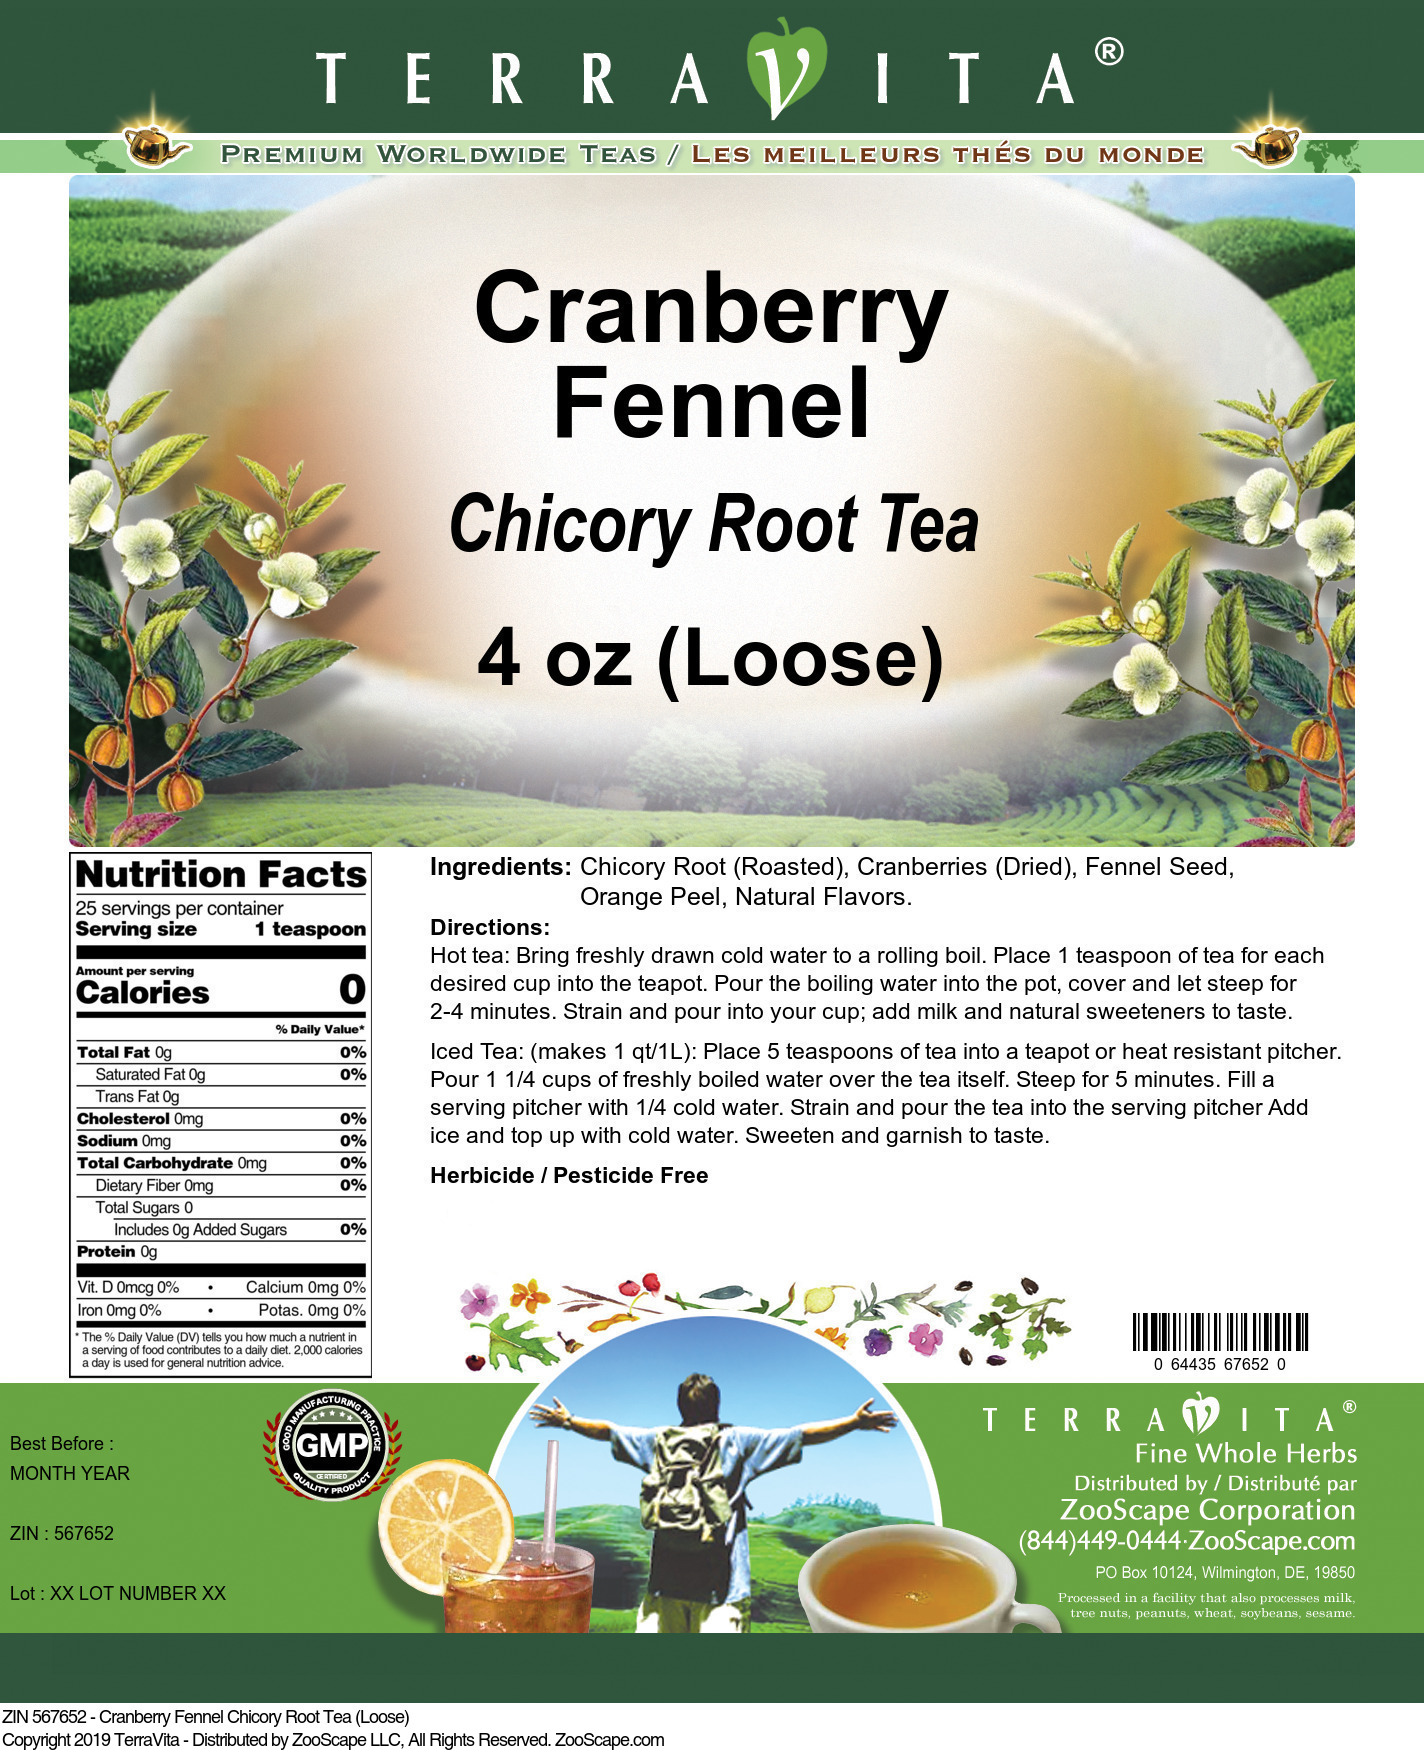 Cranberry Fennel Chicory Root